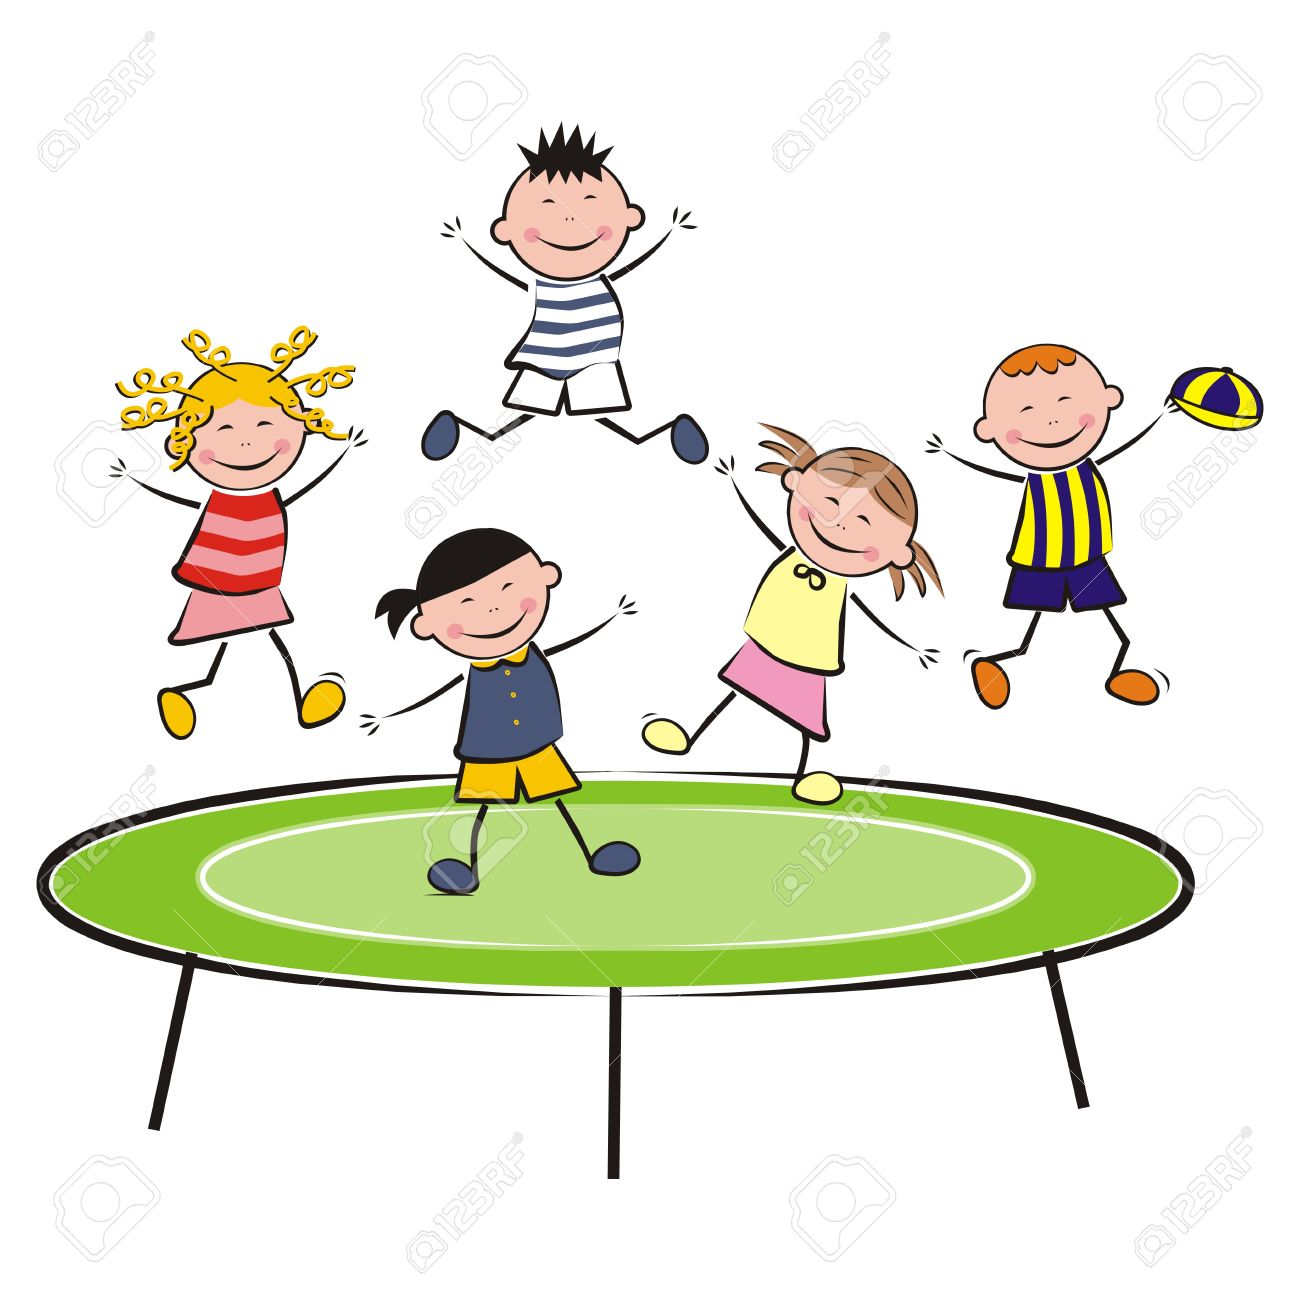 594 Trampoline free clipart.